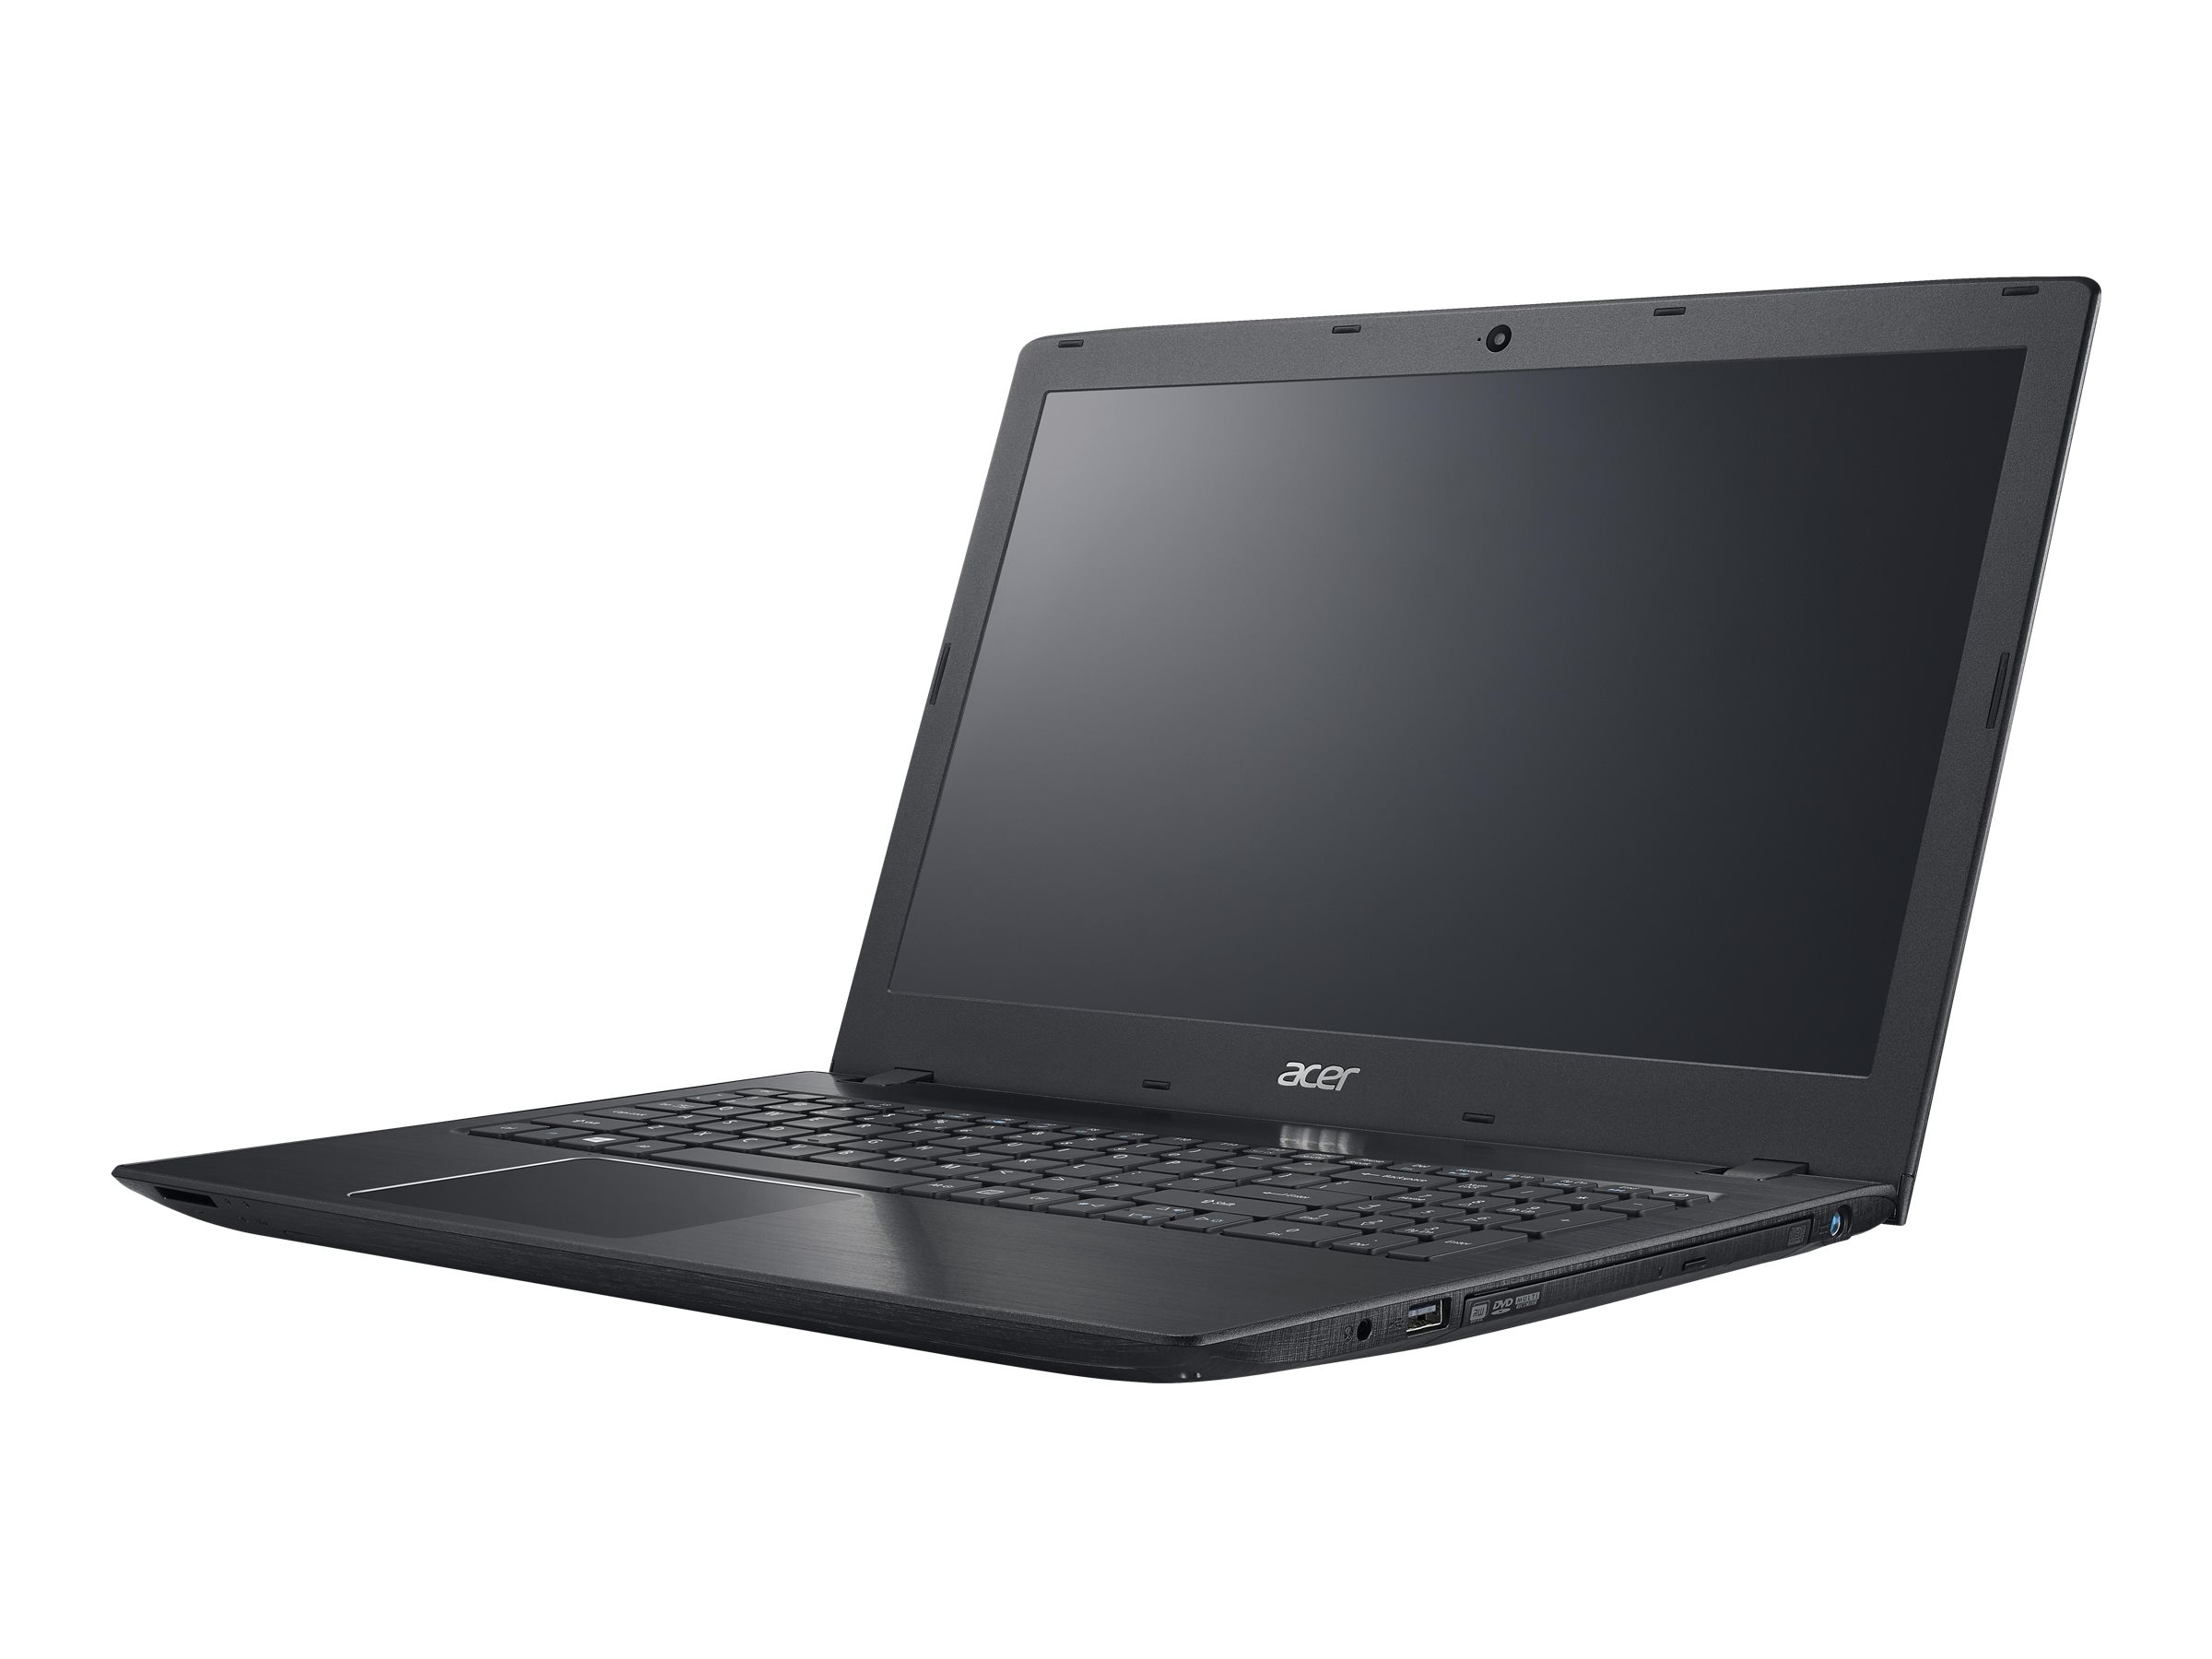 Acer Aspire E5-575T-33CF Core i3-6100U 2.3GHz 4GB 1TB ac BT WC 6C 15.6 HD MT W10H64